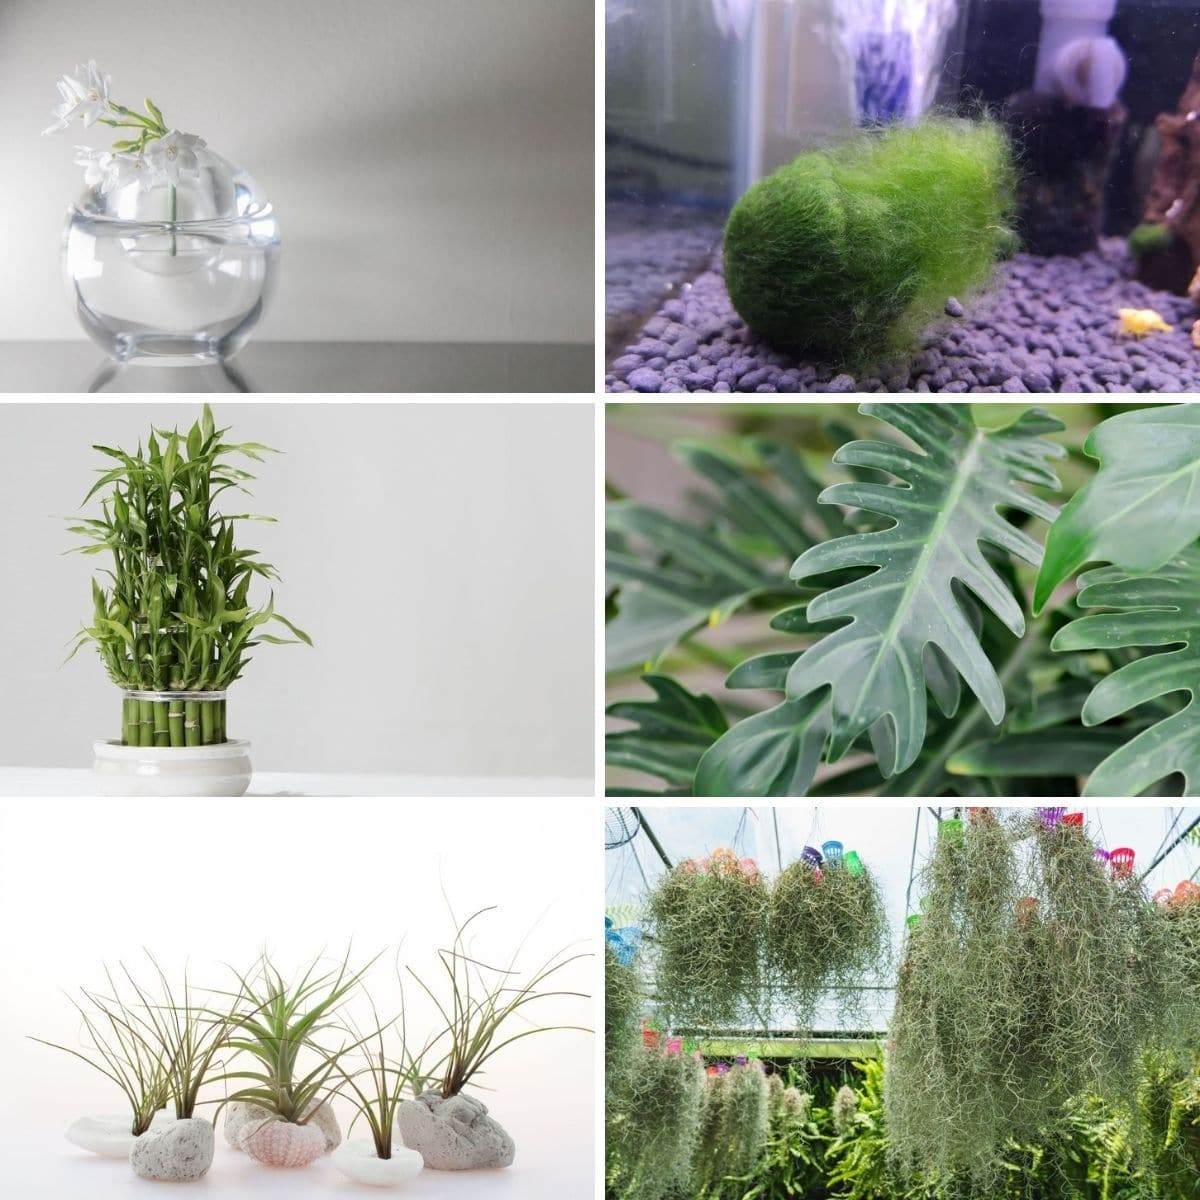 Collage photo featuring plants without soil